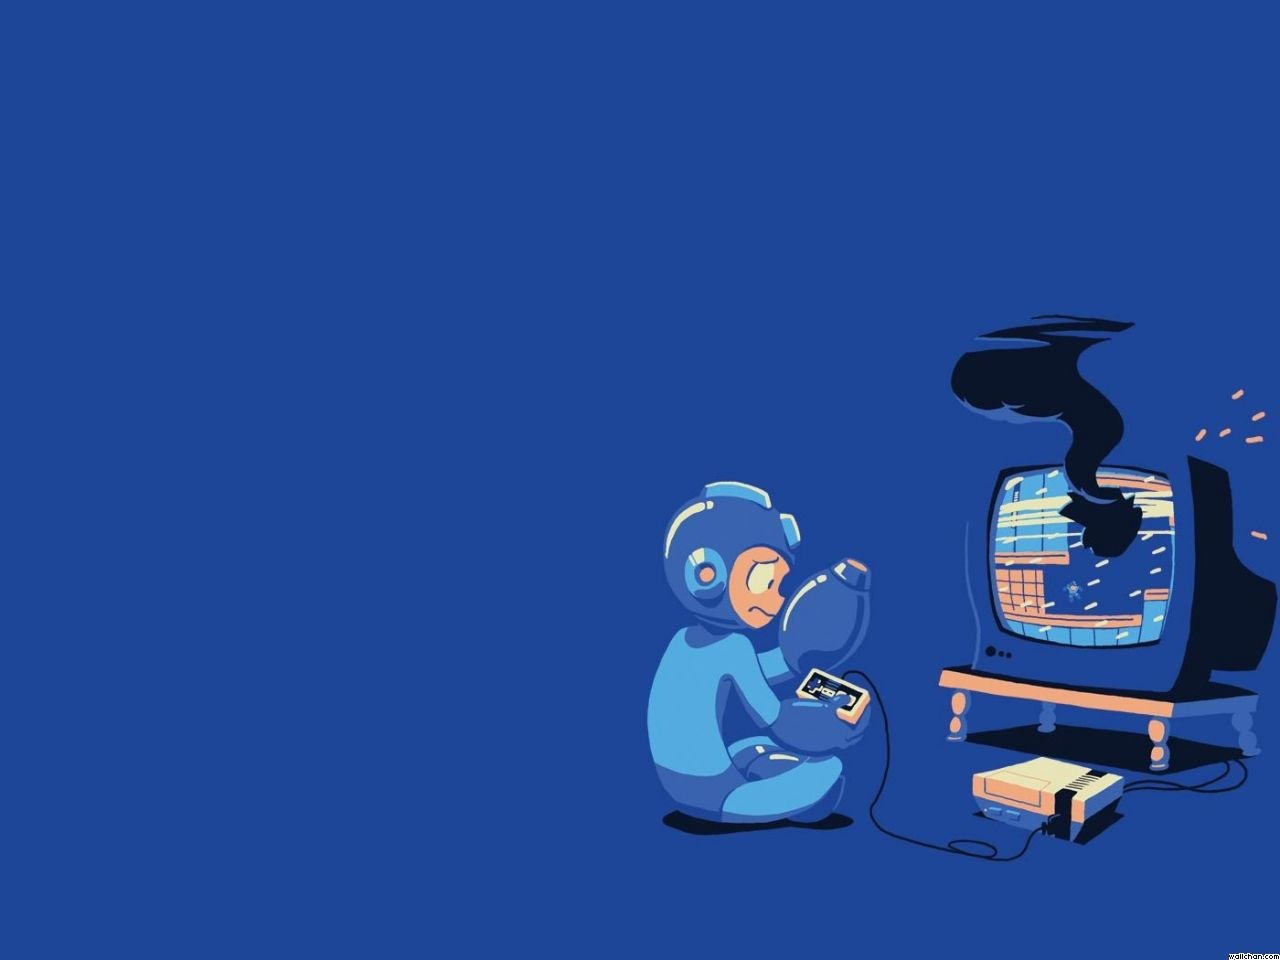 megaman wallpaper 1080p wallpapersafari